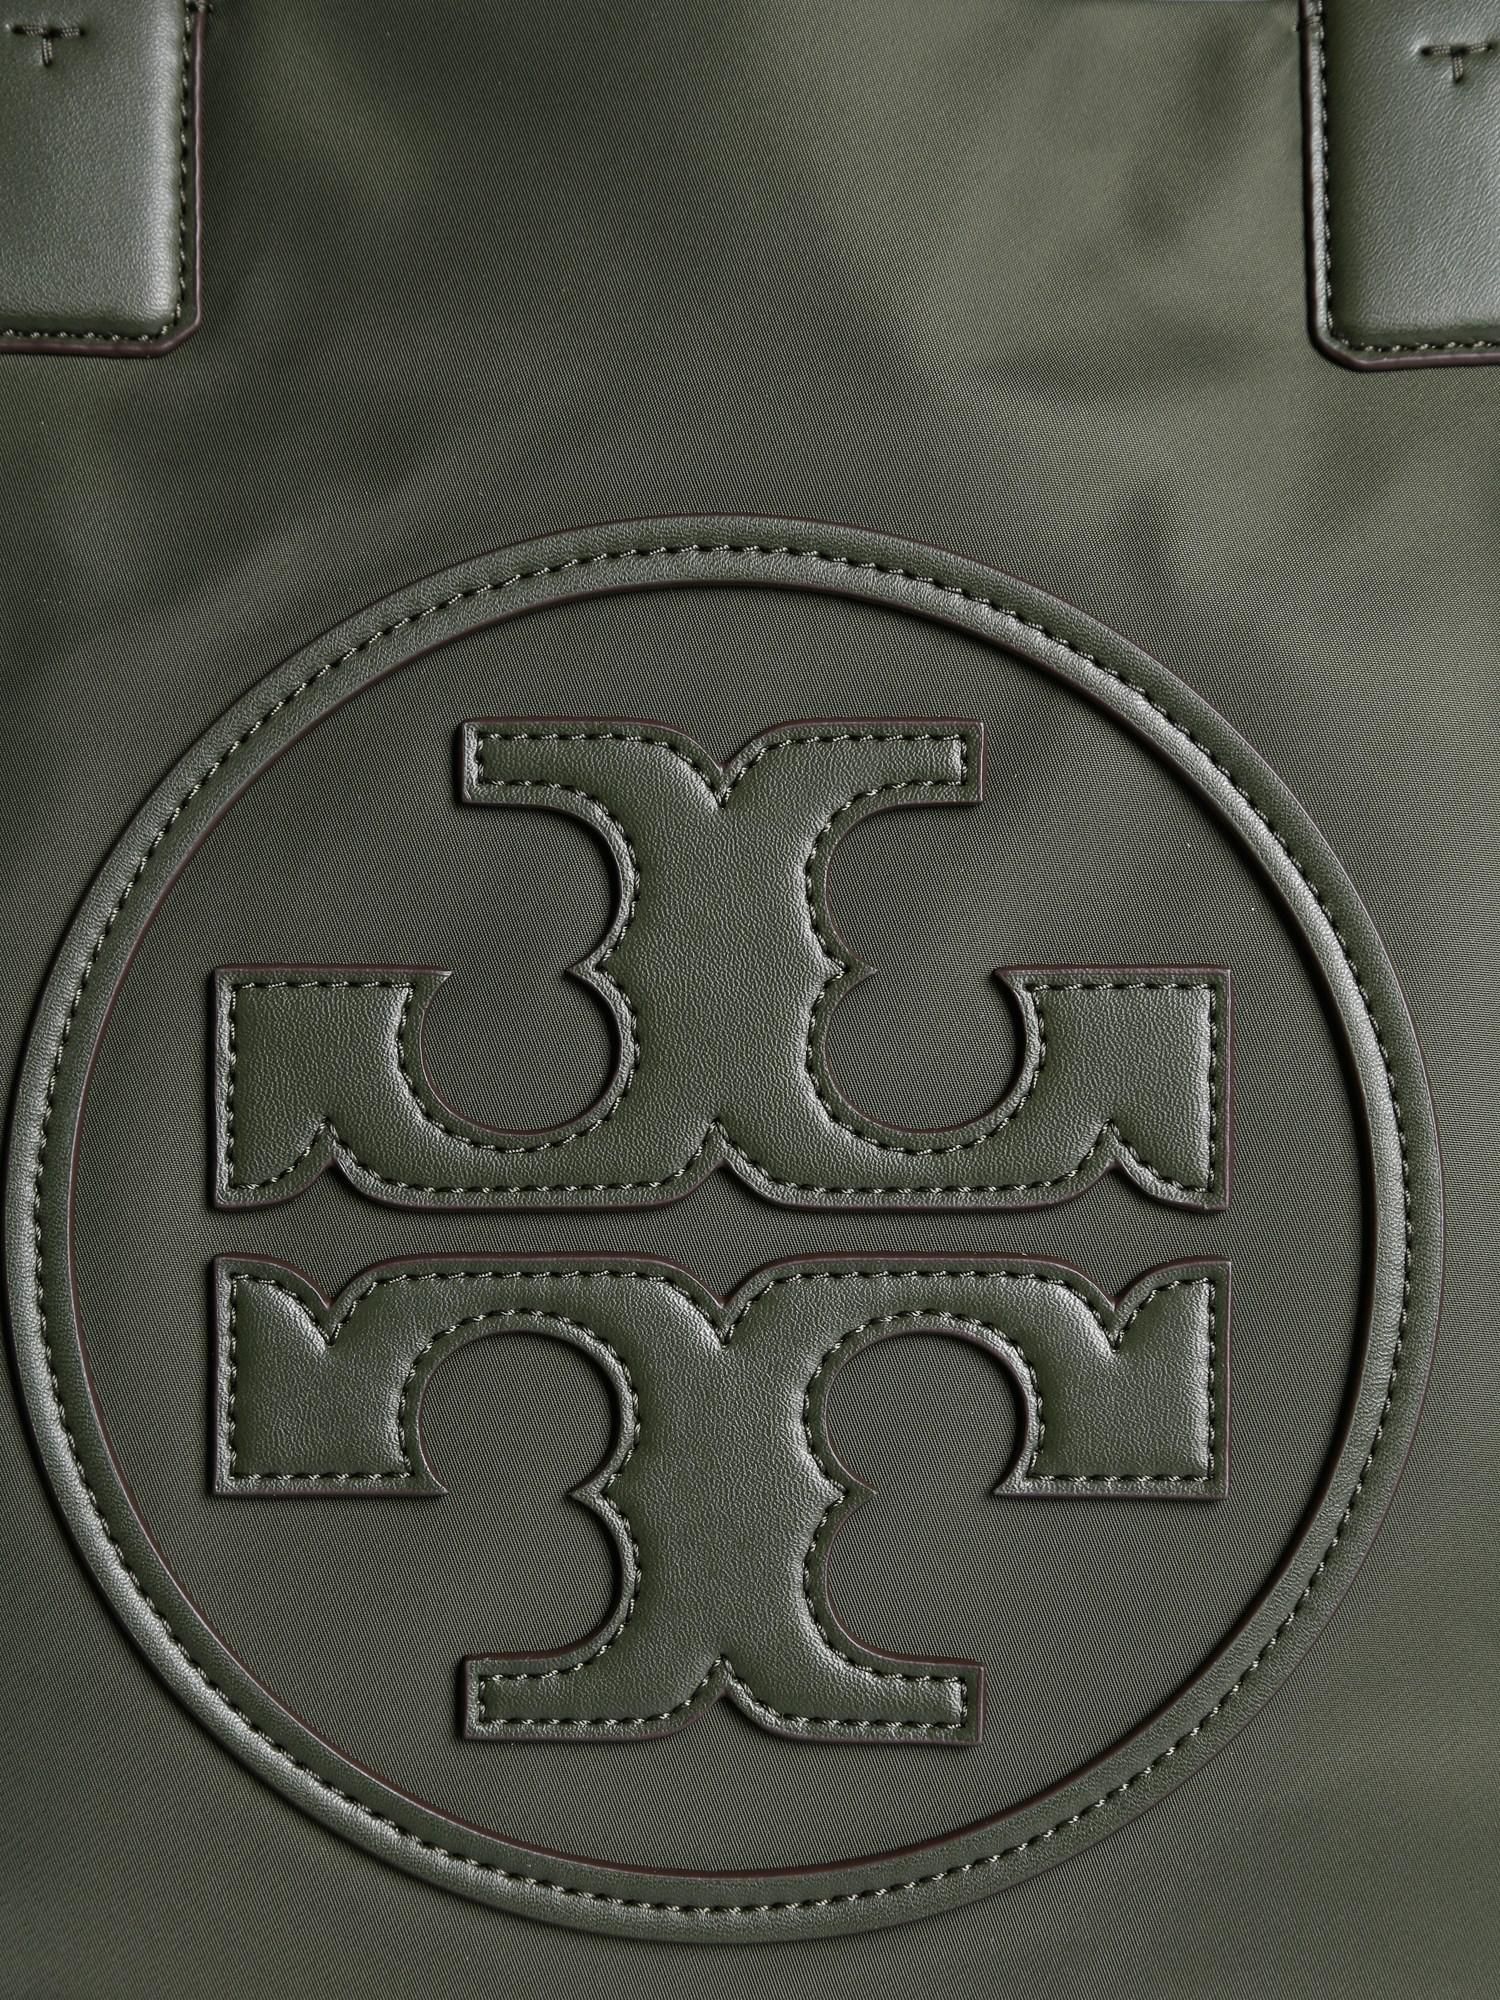 cfc8817045d9 Tory Burch Ella Tote Bag In Technical Fabric in Green - Lyst